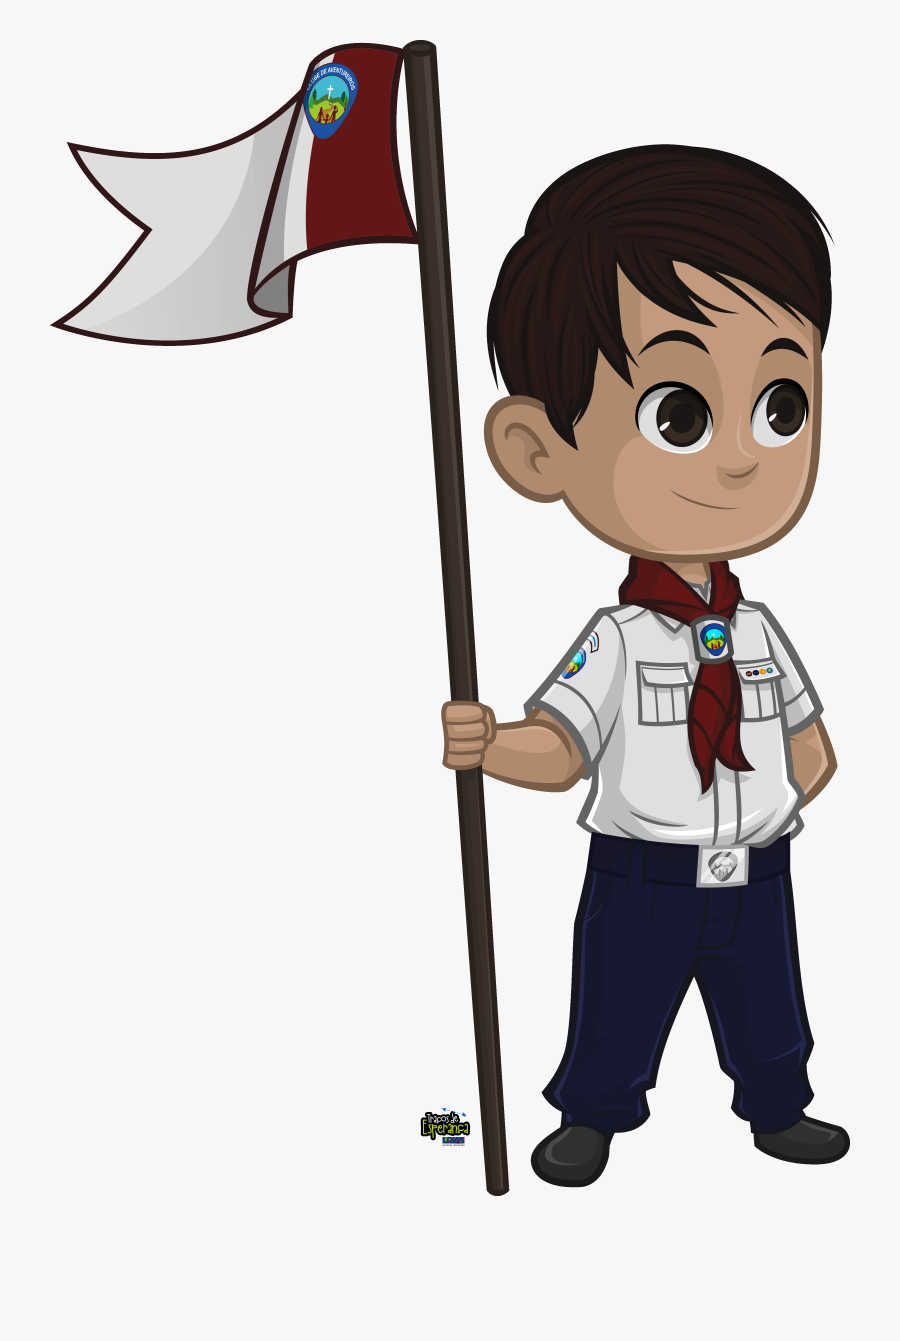 Boy Scout Cliparts, Stock Vector And Royalty Free Boy Scout Illustrations